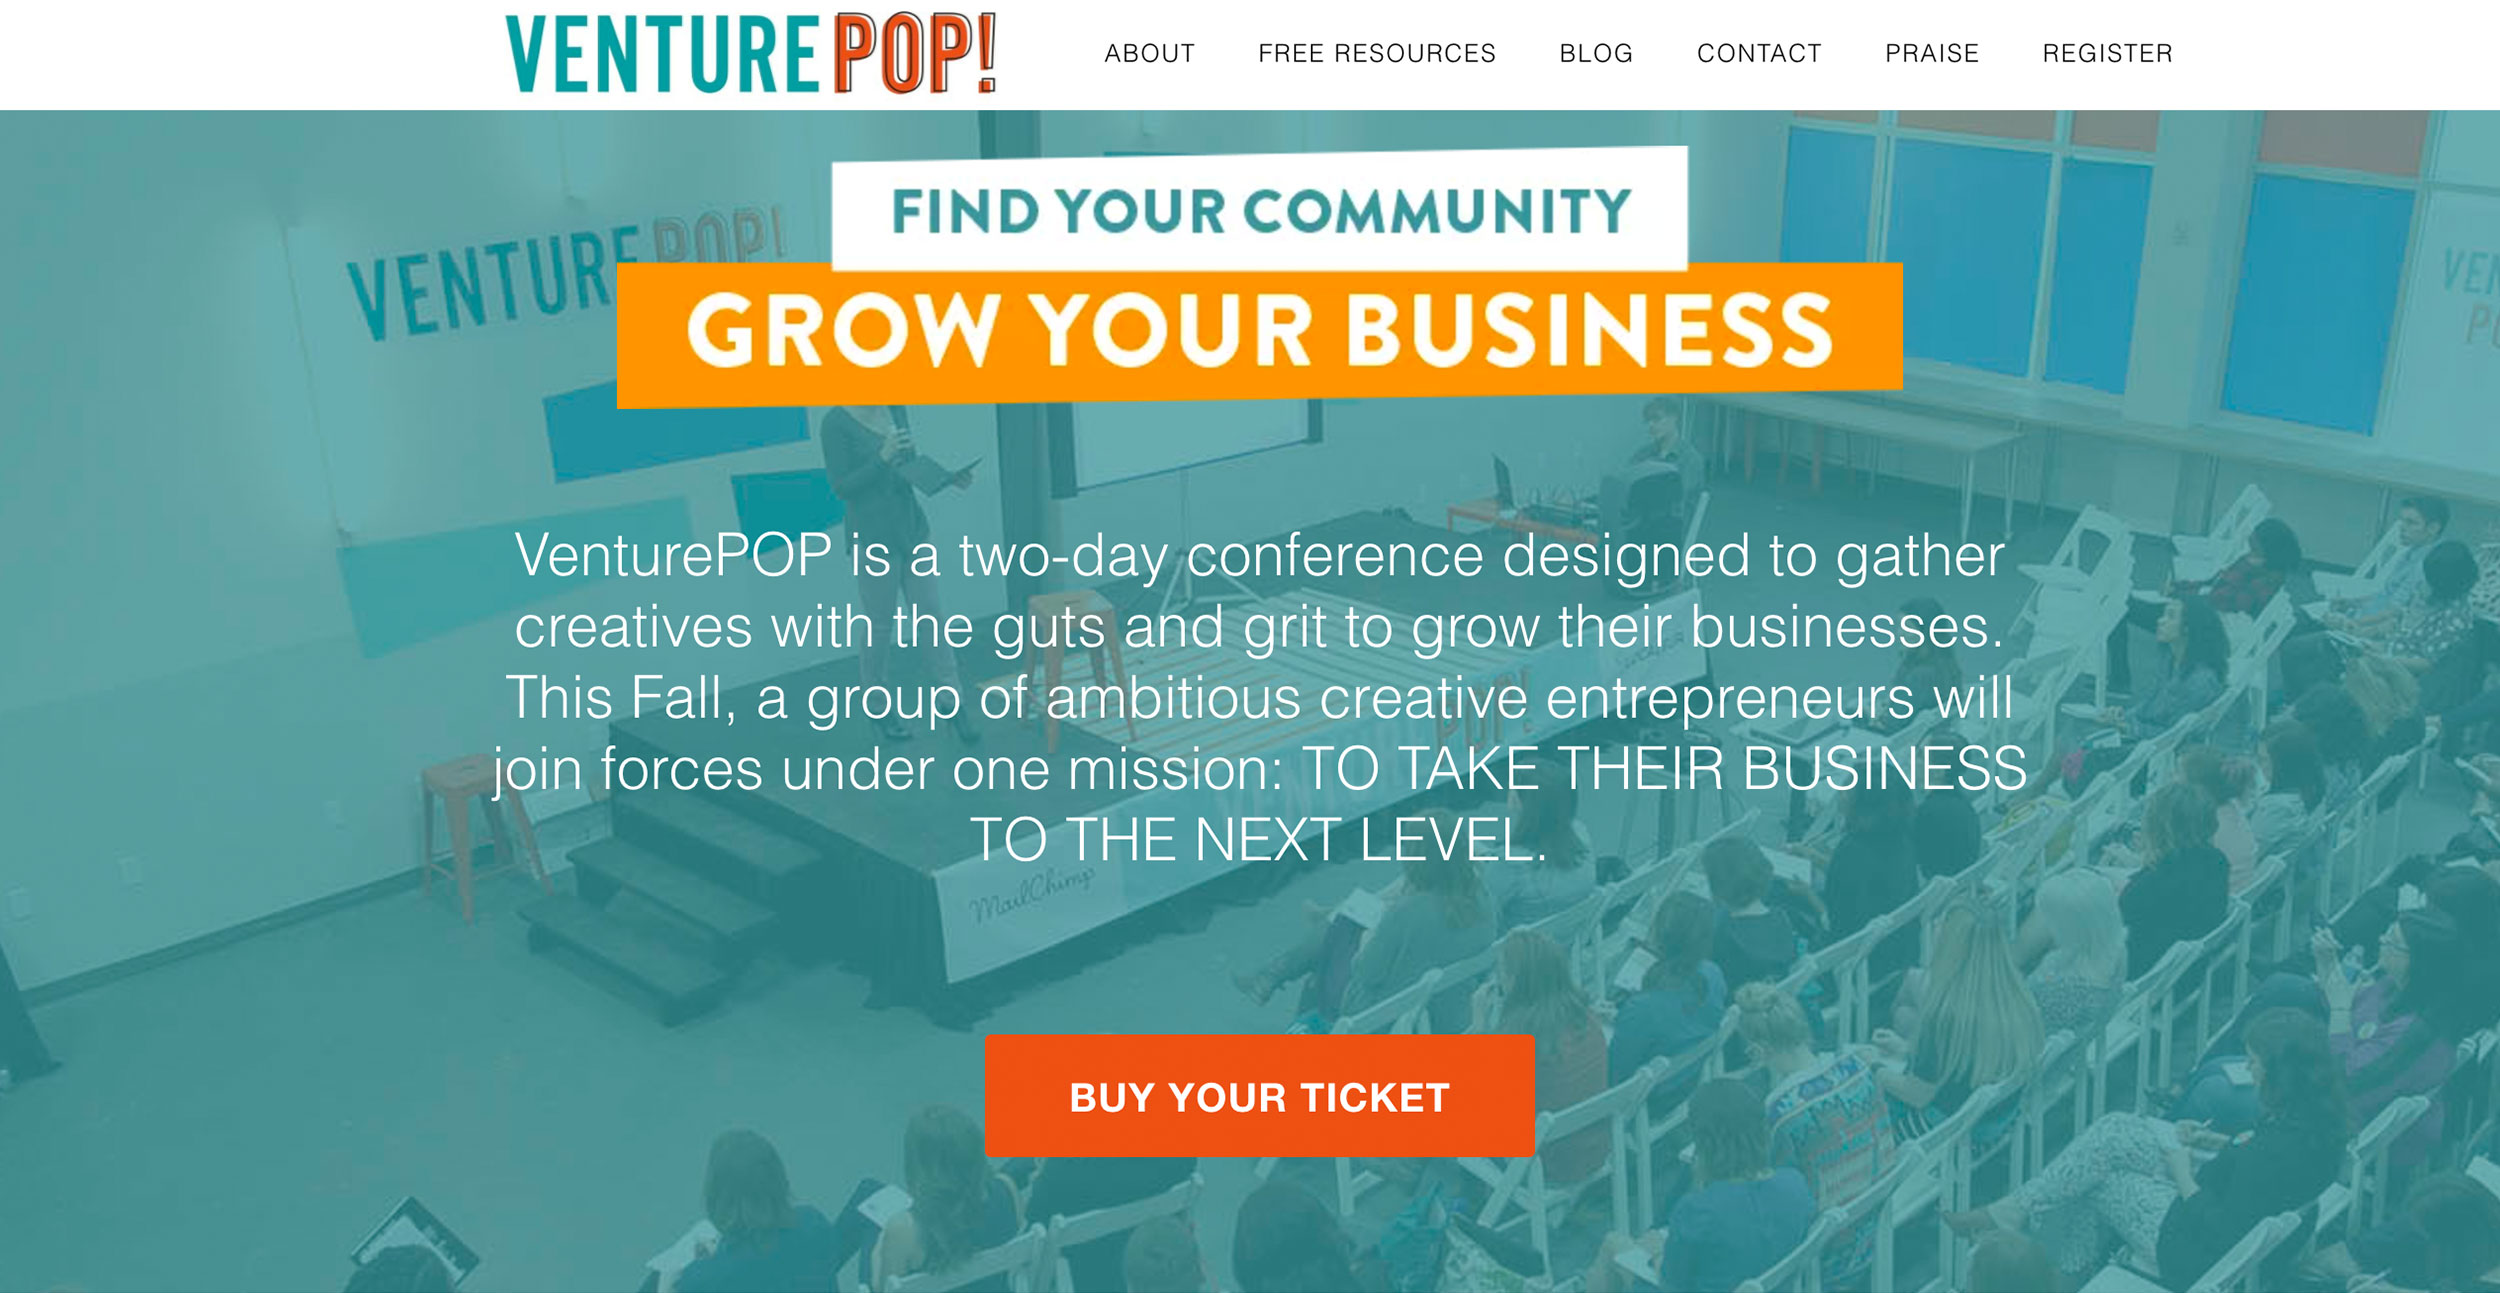 scout-new-orleans-venture-pop-site